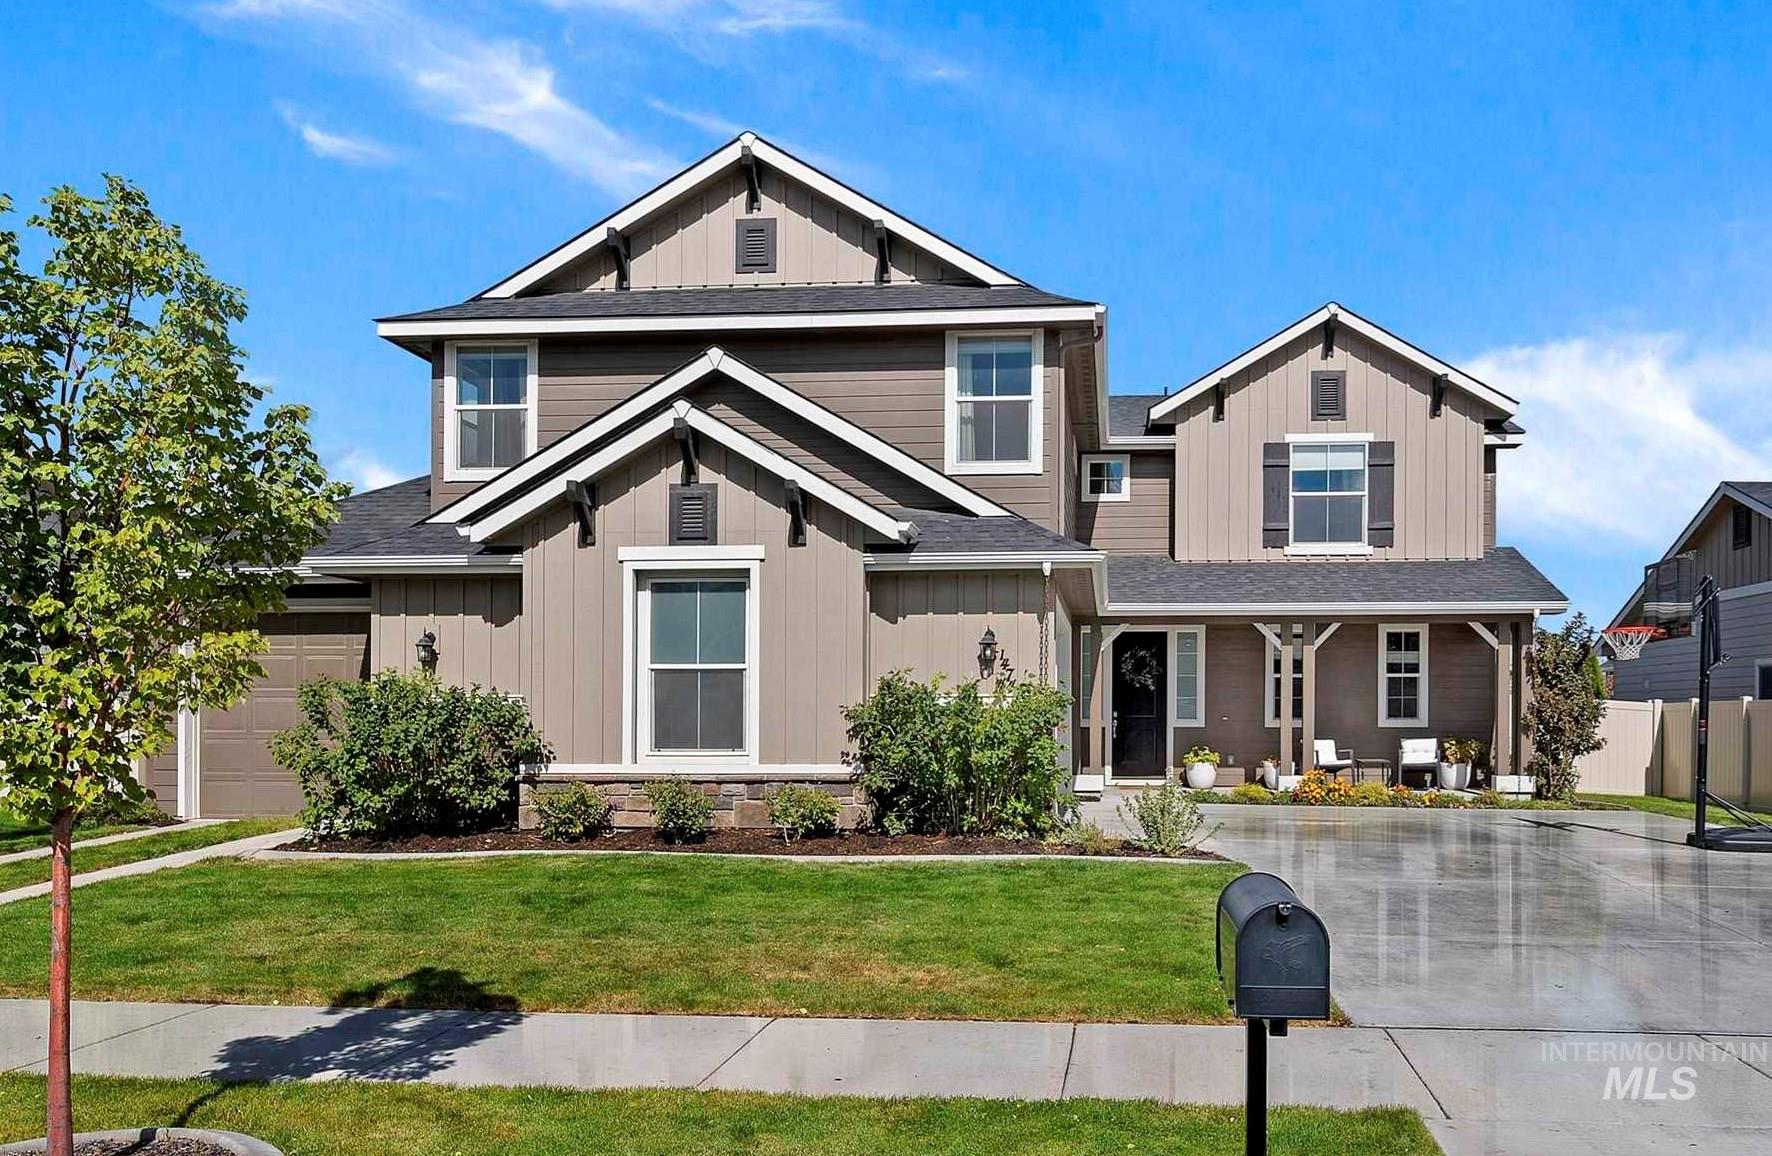 OPEN HOUSE- SATURDAY 10/23 12-3:00! Quick freeway access to Boise & the Airport. You will love this home in the highly desirable community of Fall Creek with a large community pool & park. The open floor plan is perfect for entertaining and gives this spacious 5 BED, 4 BATH, 3 CAR+BONUS a place for everyone to gather. The large open kitchen w/quartz counters are perfect for entertaining with the sink in the island & large pantry. Refrigerator & reverse osmosis system included! Extra-large mudroom with plenty of storage to keep things tidy. Downstairs guest room/5th bedroom/office and full bathroom off of entry. Master has double vanity & dual closets along with a soak tub for relaxing. Enjoy outdoor living with the extra-large patio with covered dining. Better than new with mature landscaping and fenced back yard & garden. Convenient location with easy access to freeway, shopping, schools, adjacent to Victory Middle School & 18-acre Bear Creek Park. Waterpark nearby! This is your new home!1 year HOME-WARRANTY - Nichole Wilkinson, Main: 208-850-1330, Silvercreek Realty Group, Main: 208-377-0422,